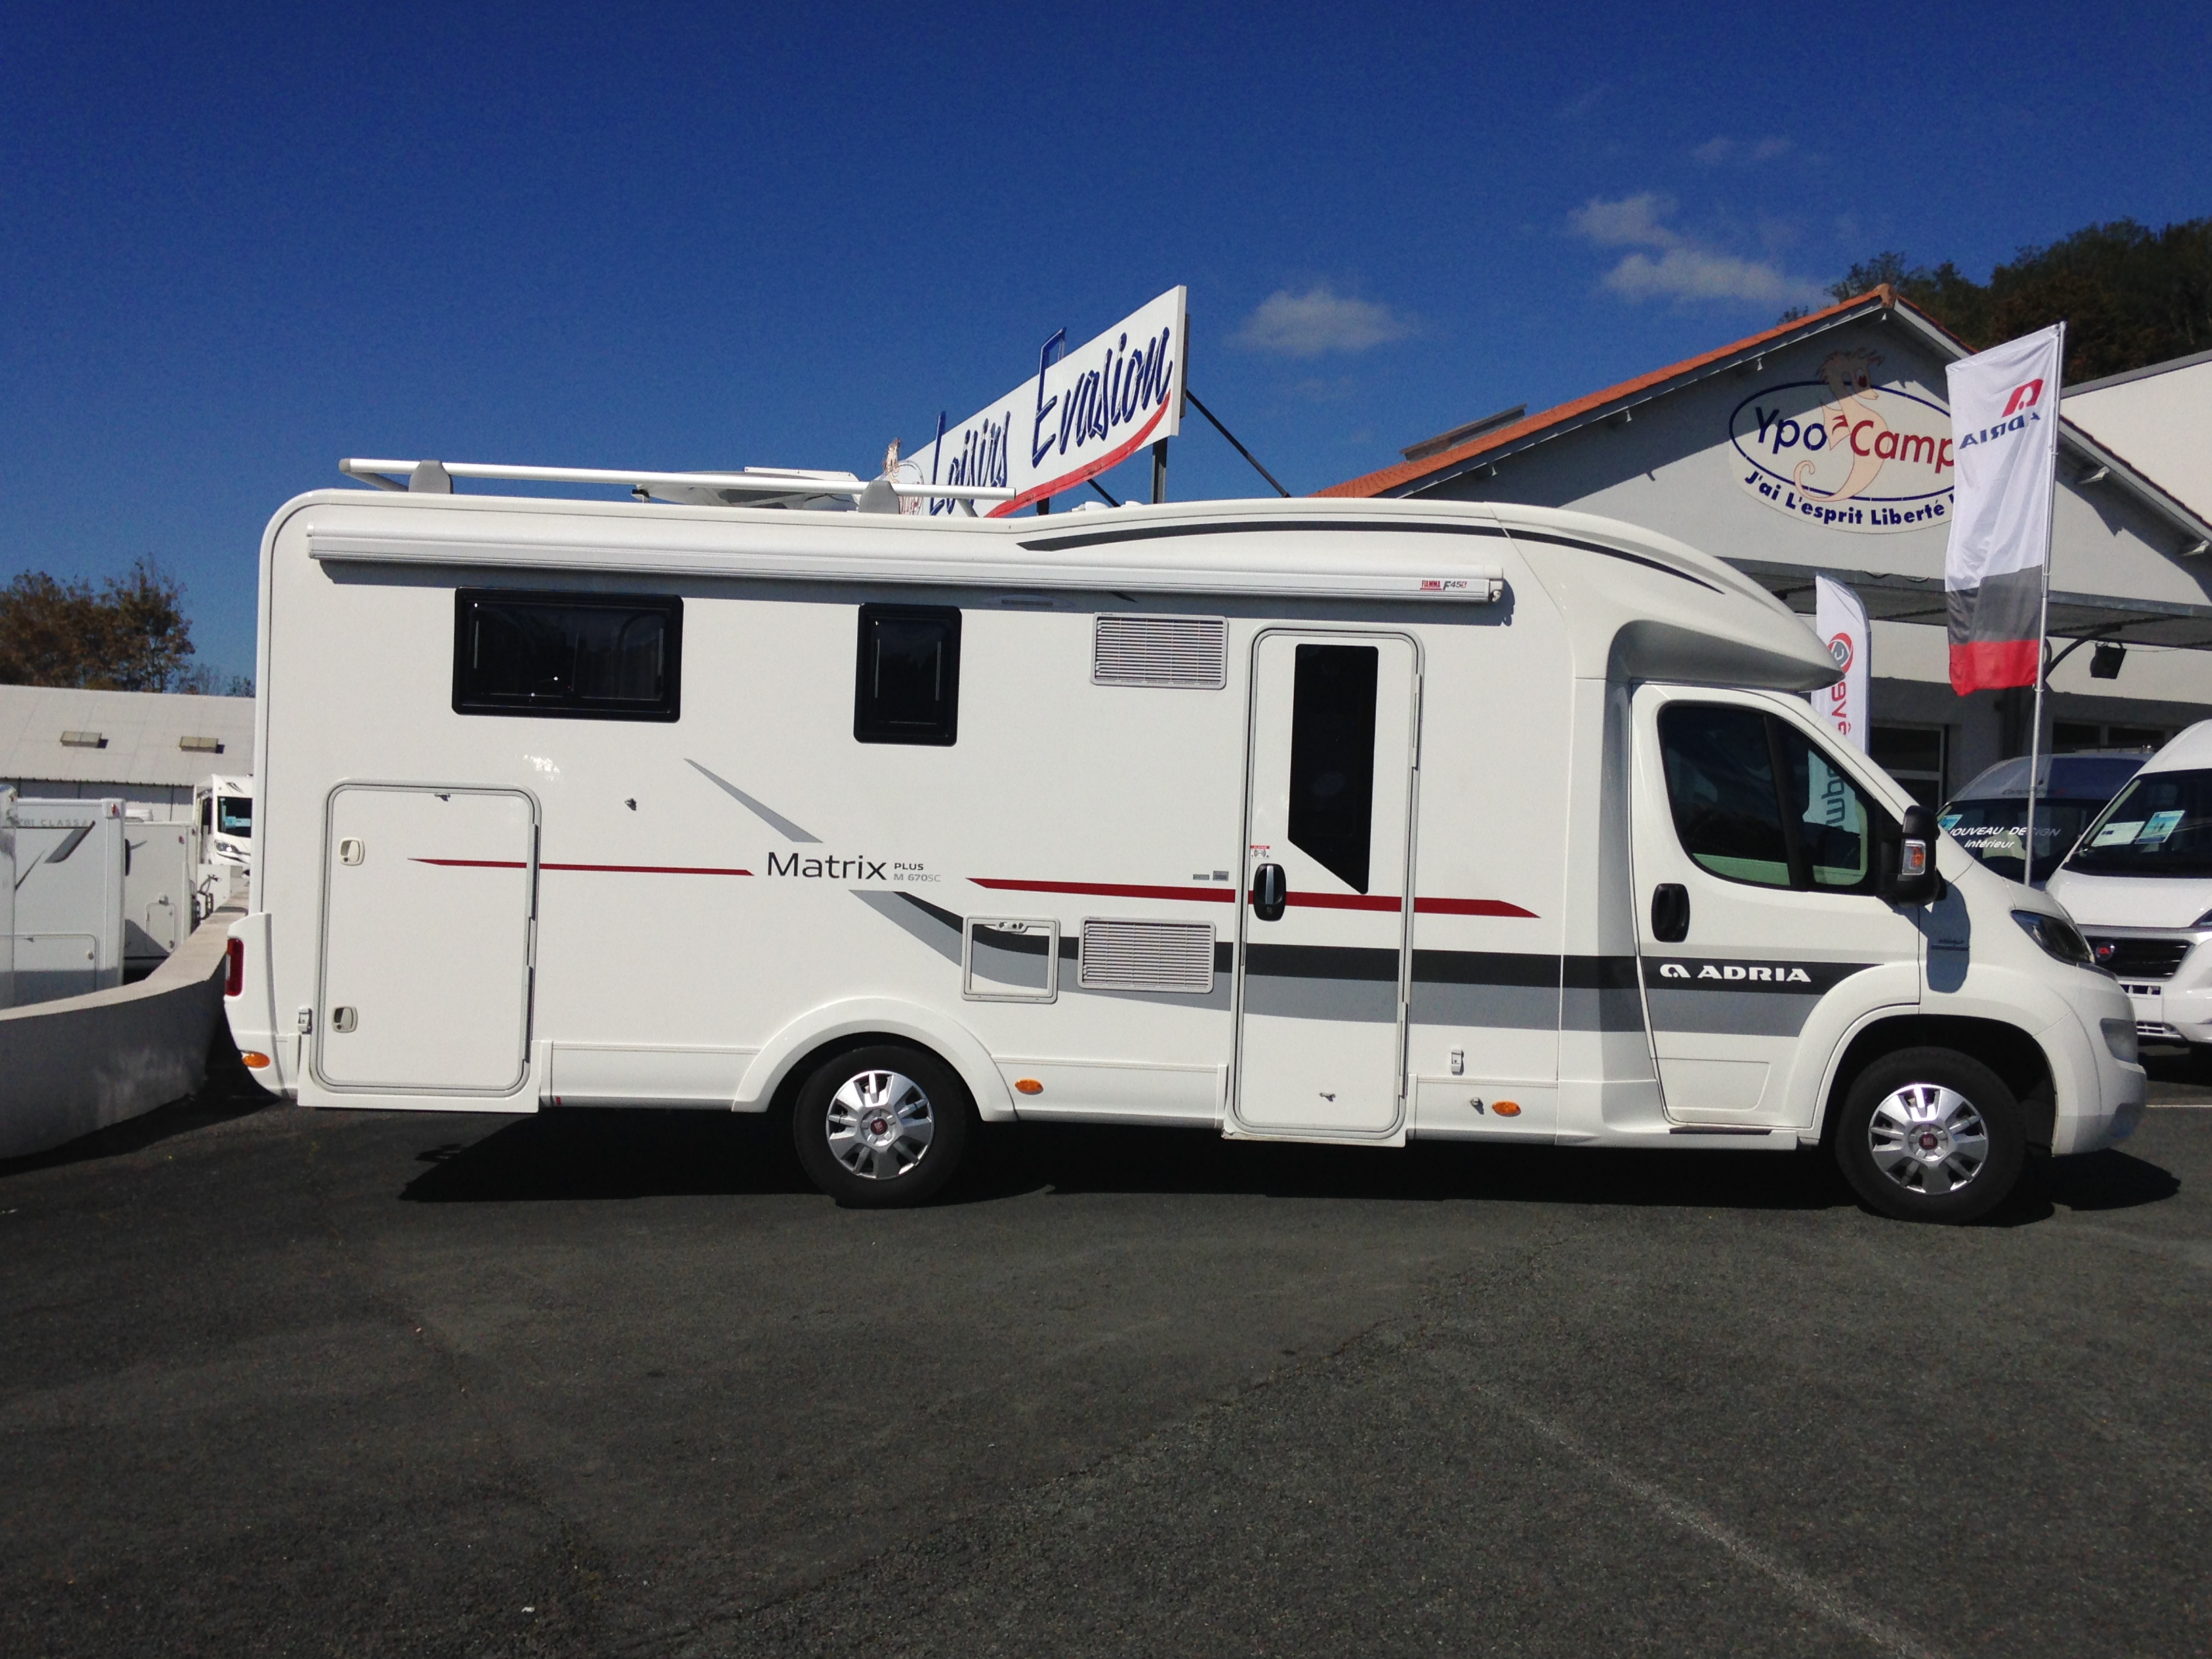 Camping car occasion dax camping car occasion ile de france le bon coin